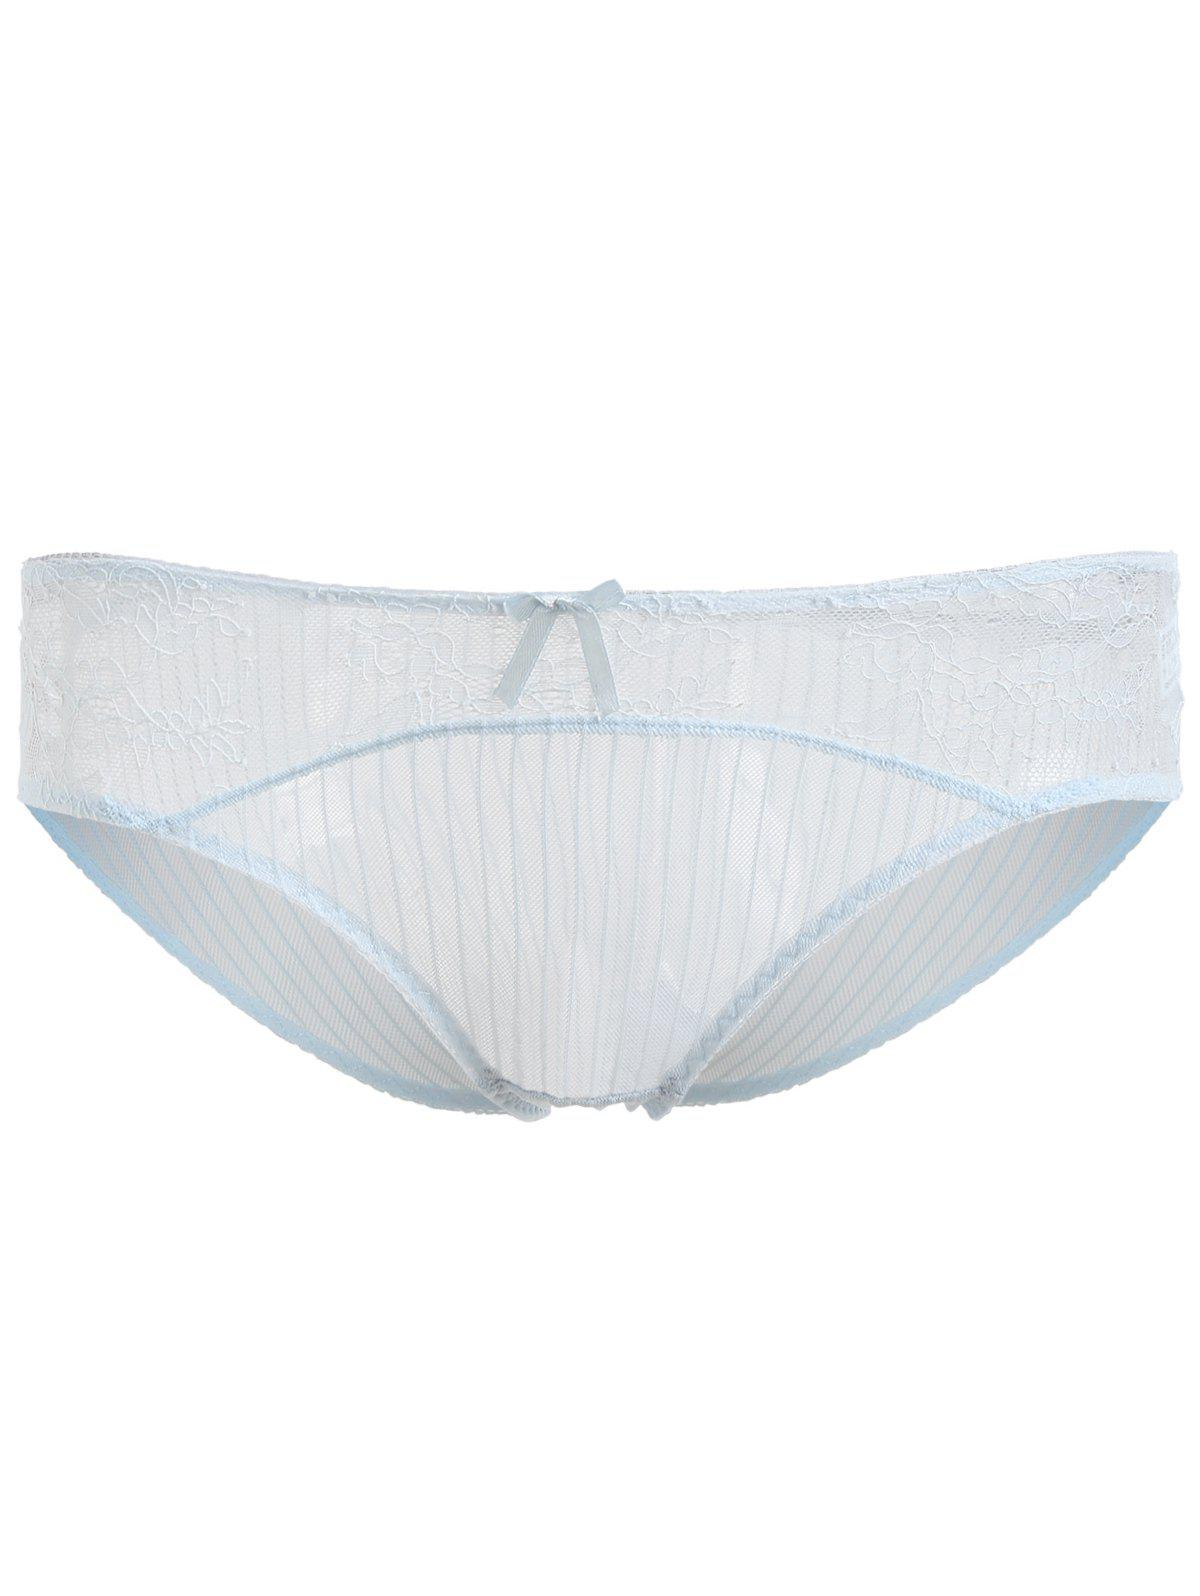 Shop Transparent Lace Soft Breathable Underwear